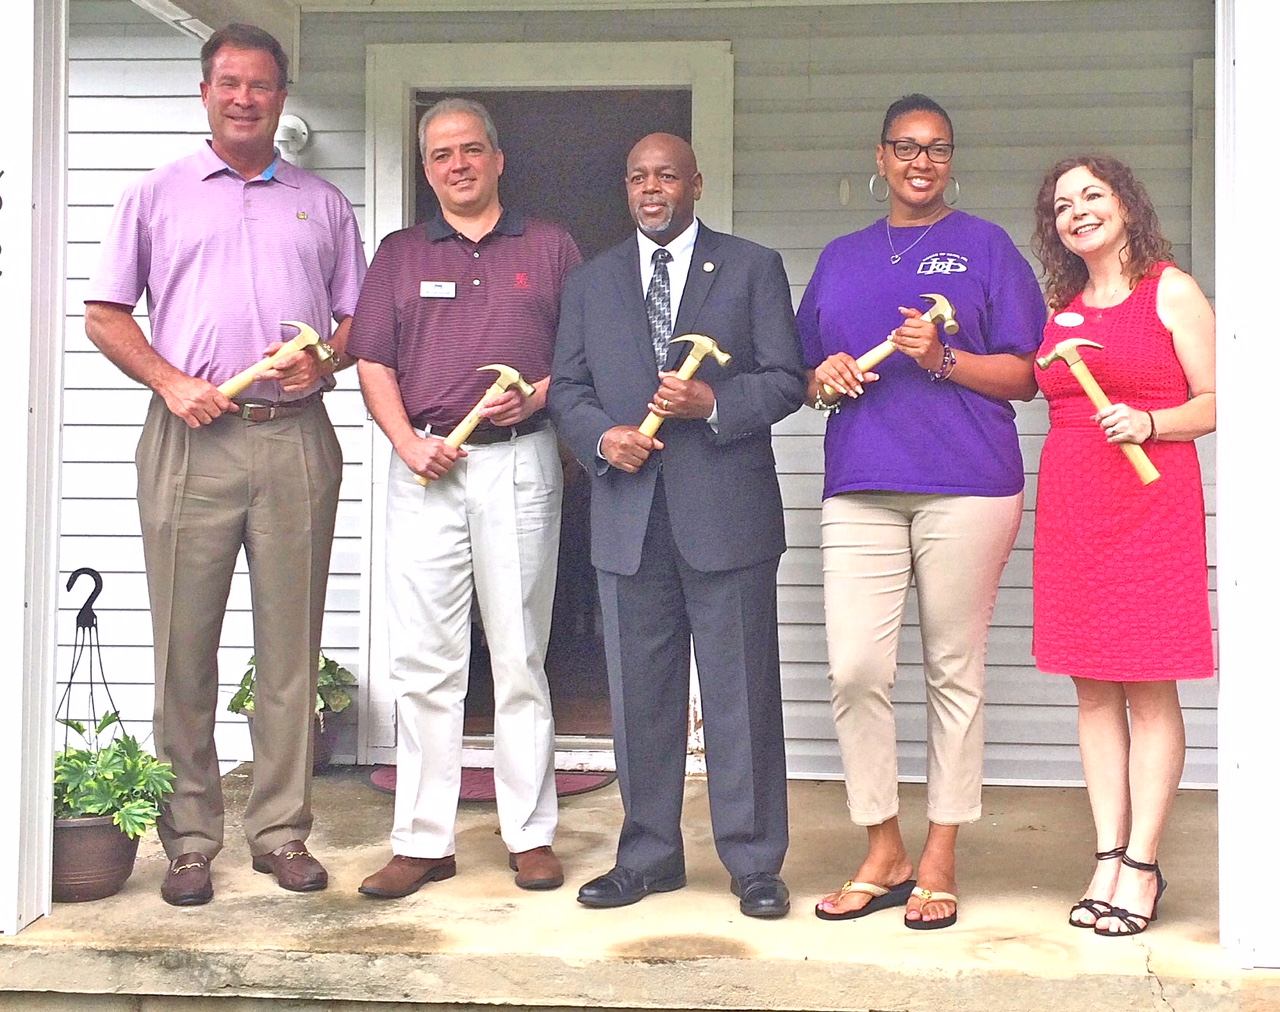 doug-cotter-house-of-dawn-ground-breaking-ceremony